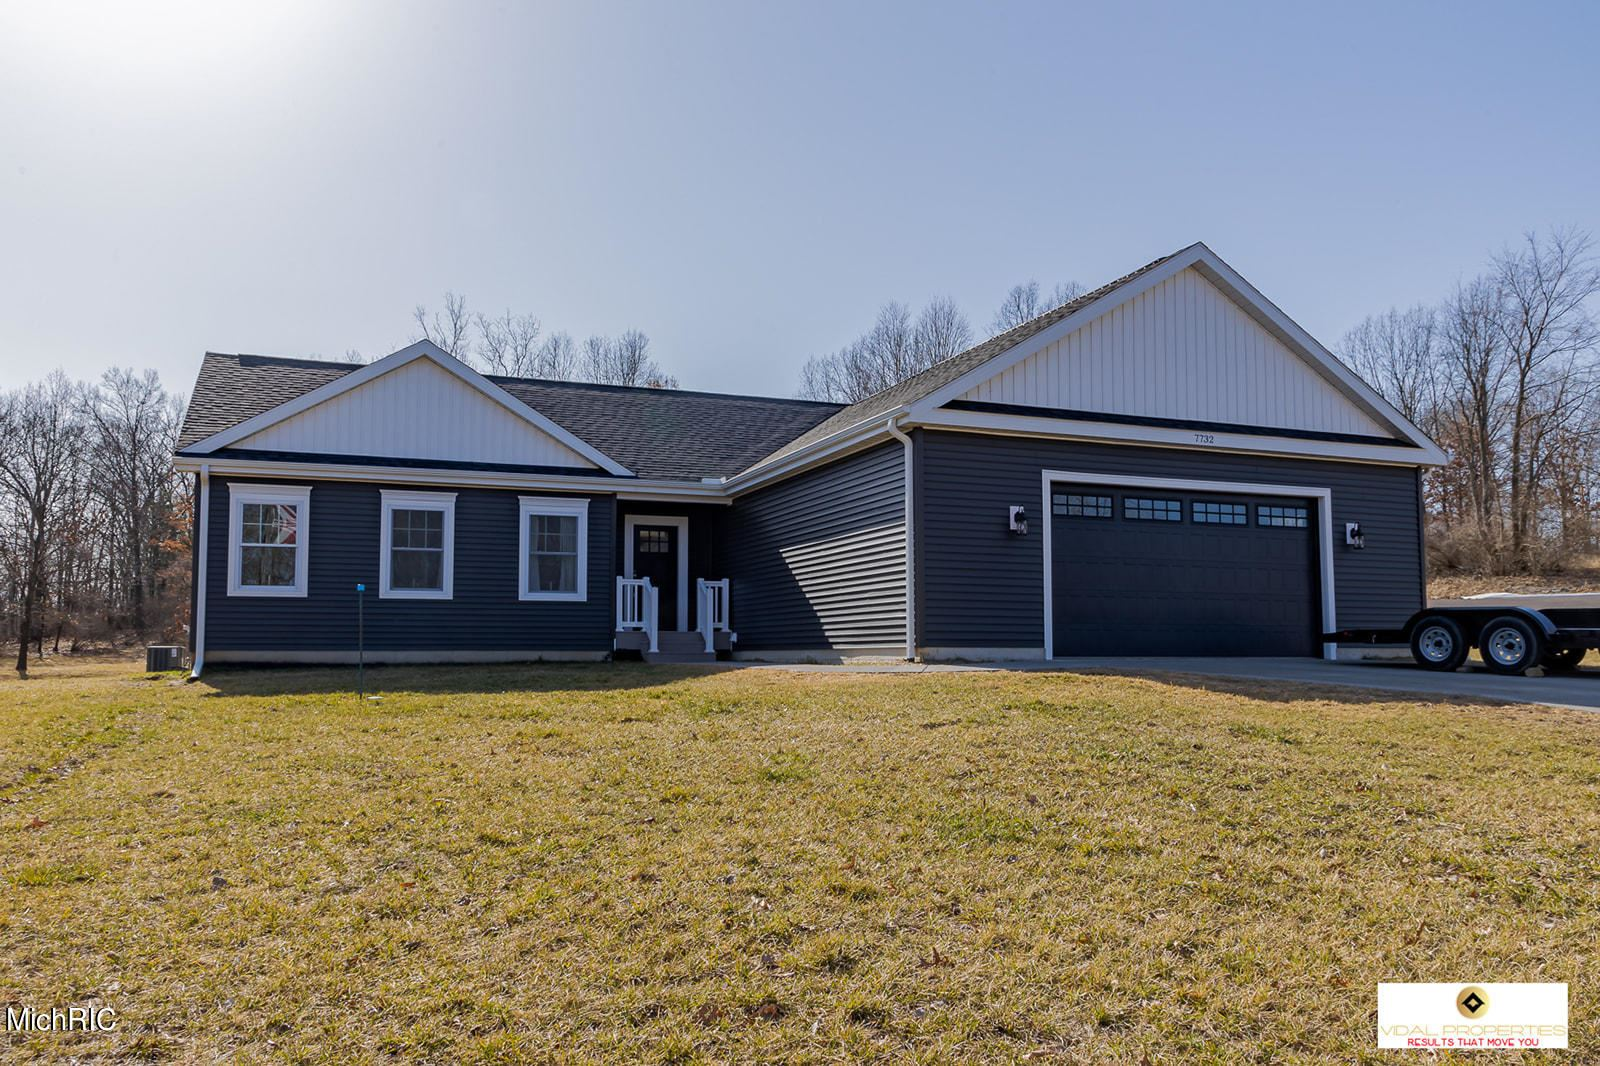 7732 E River Road, Battle Creek, MI 49014 - MLS#: 21009283